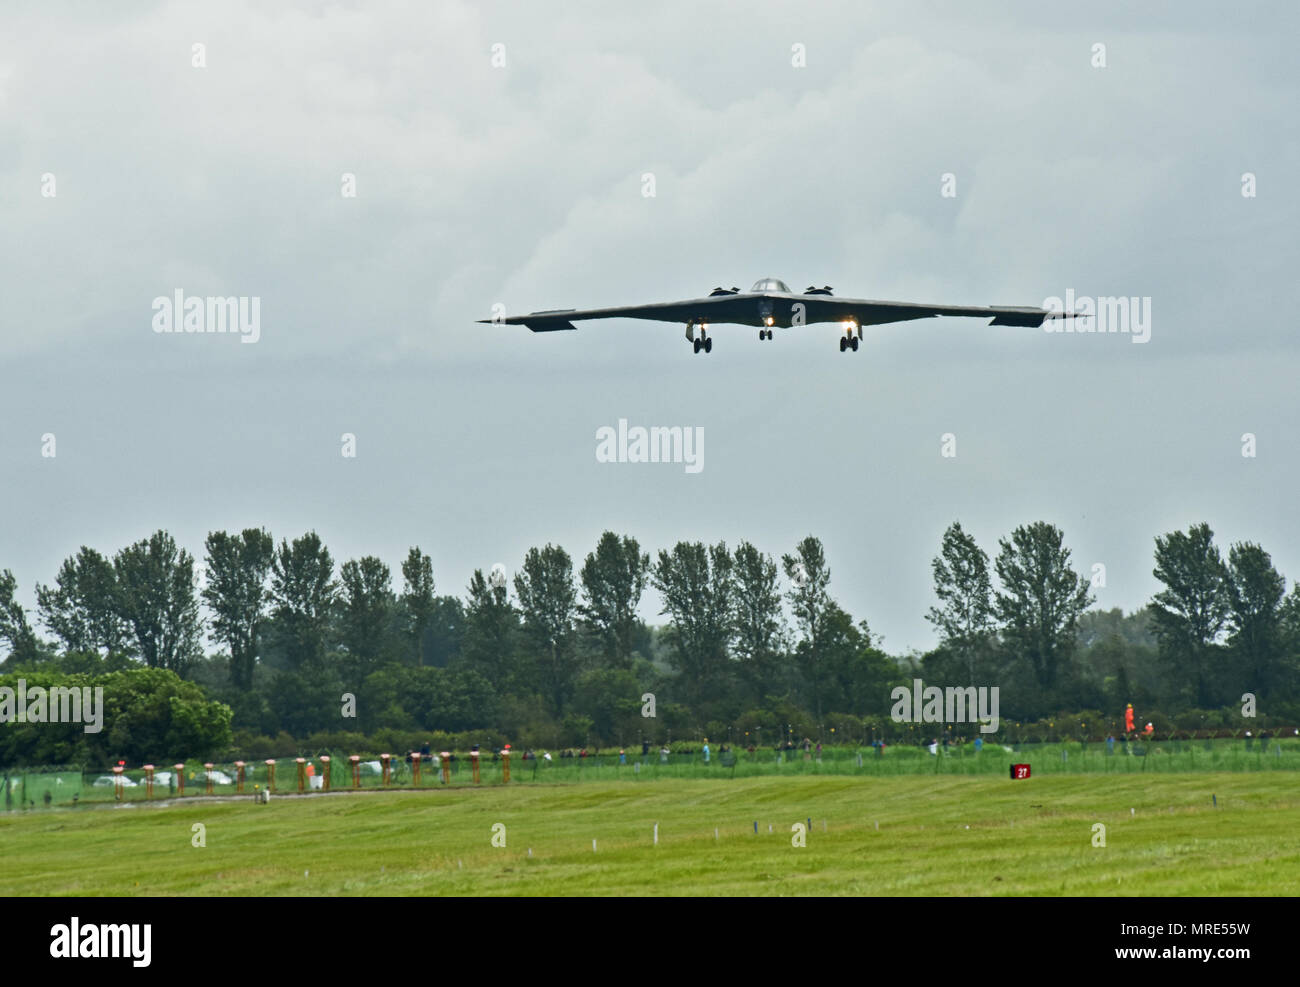 A B-2 Spirit deployed from Whiteman Air Force Base, Mo., approaches the runway at RAF Fairford, U.K., June 9, 2017. The B-2 routinely conducts bomber assurance and deterrence missions providing a flexible and vigilant long-range global strike capability, and is just one demonstration of the U.S. commitment to supporting global security. (U.S. Air Force photo by Tech. Sgt. Miguel Lara III) Stock Photo